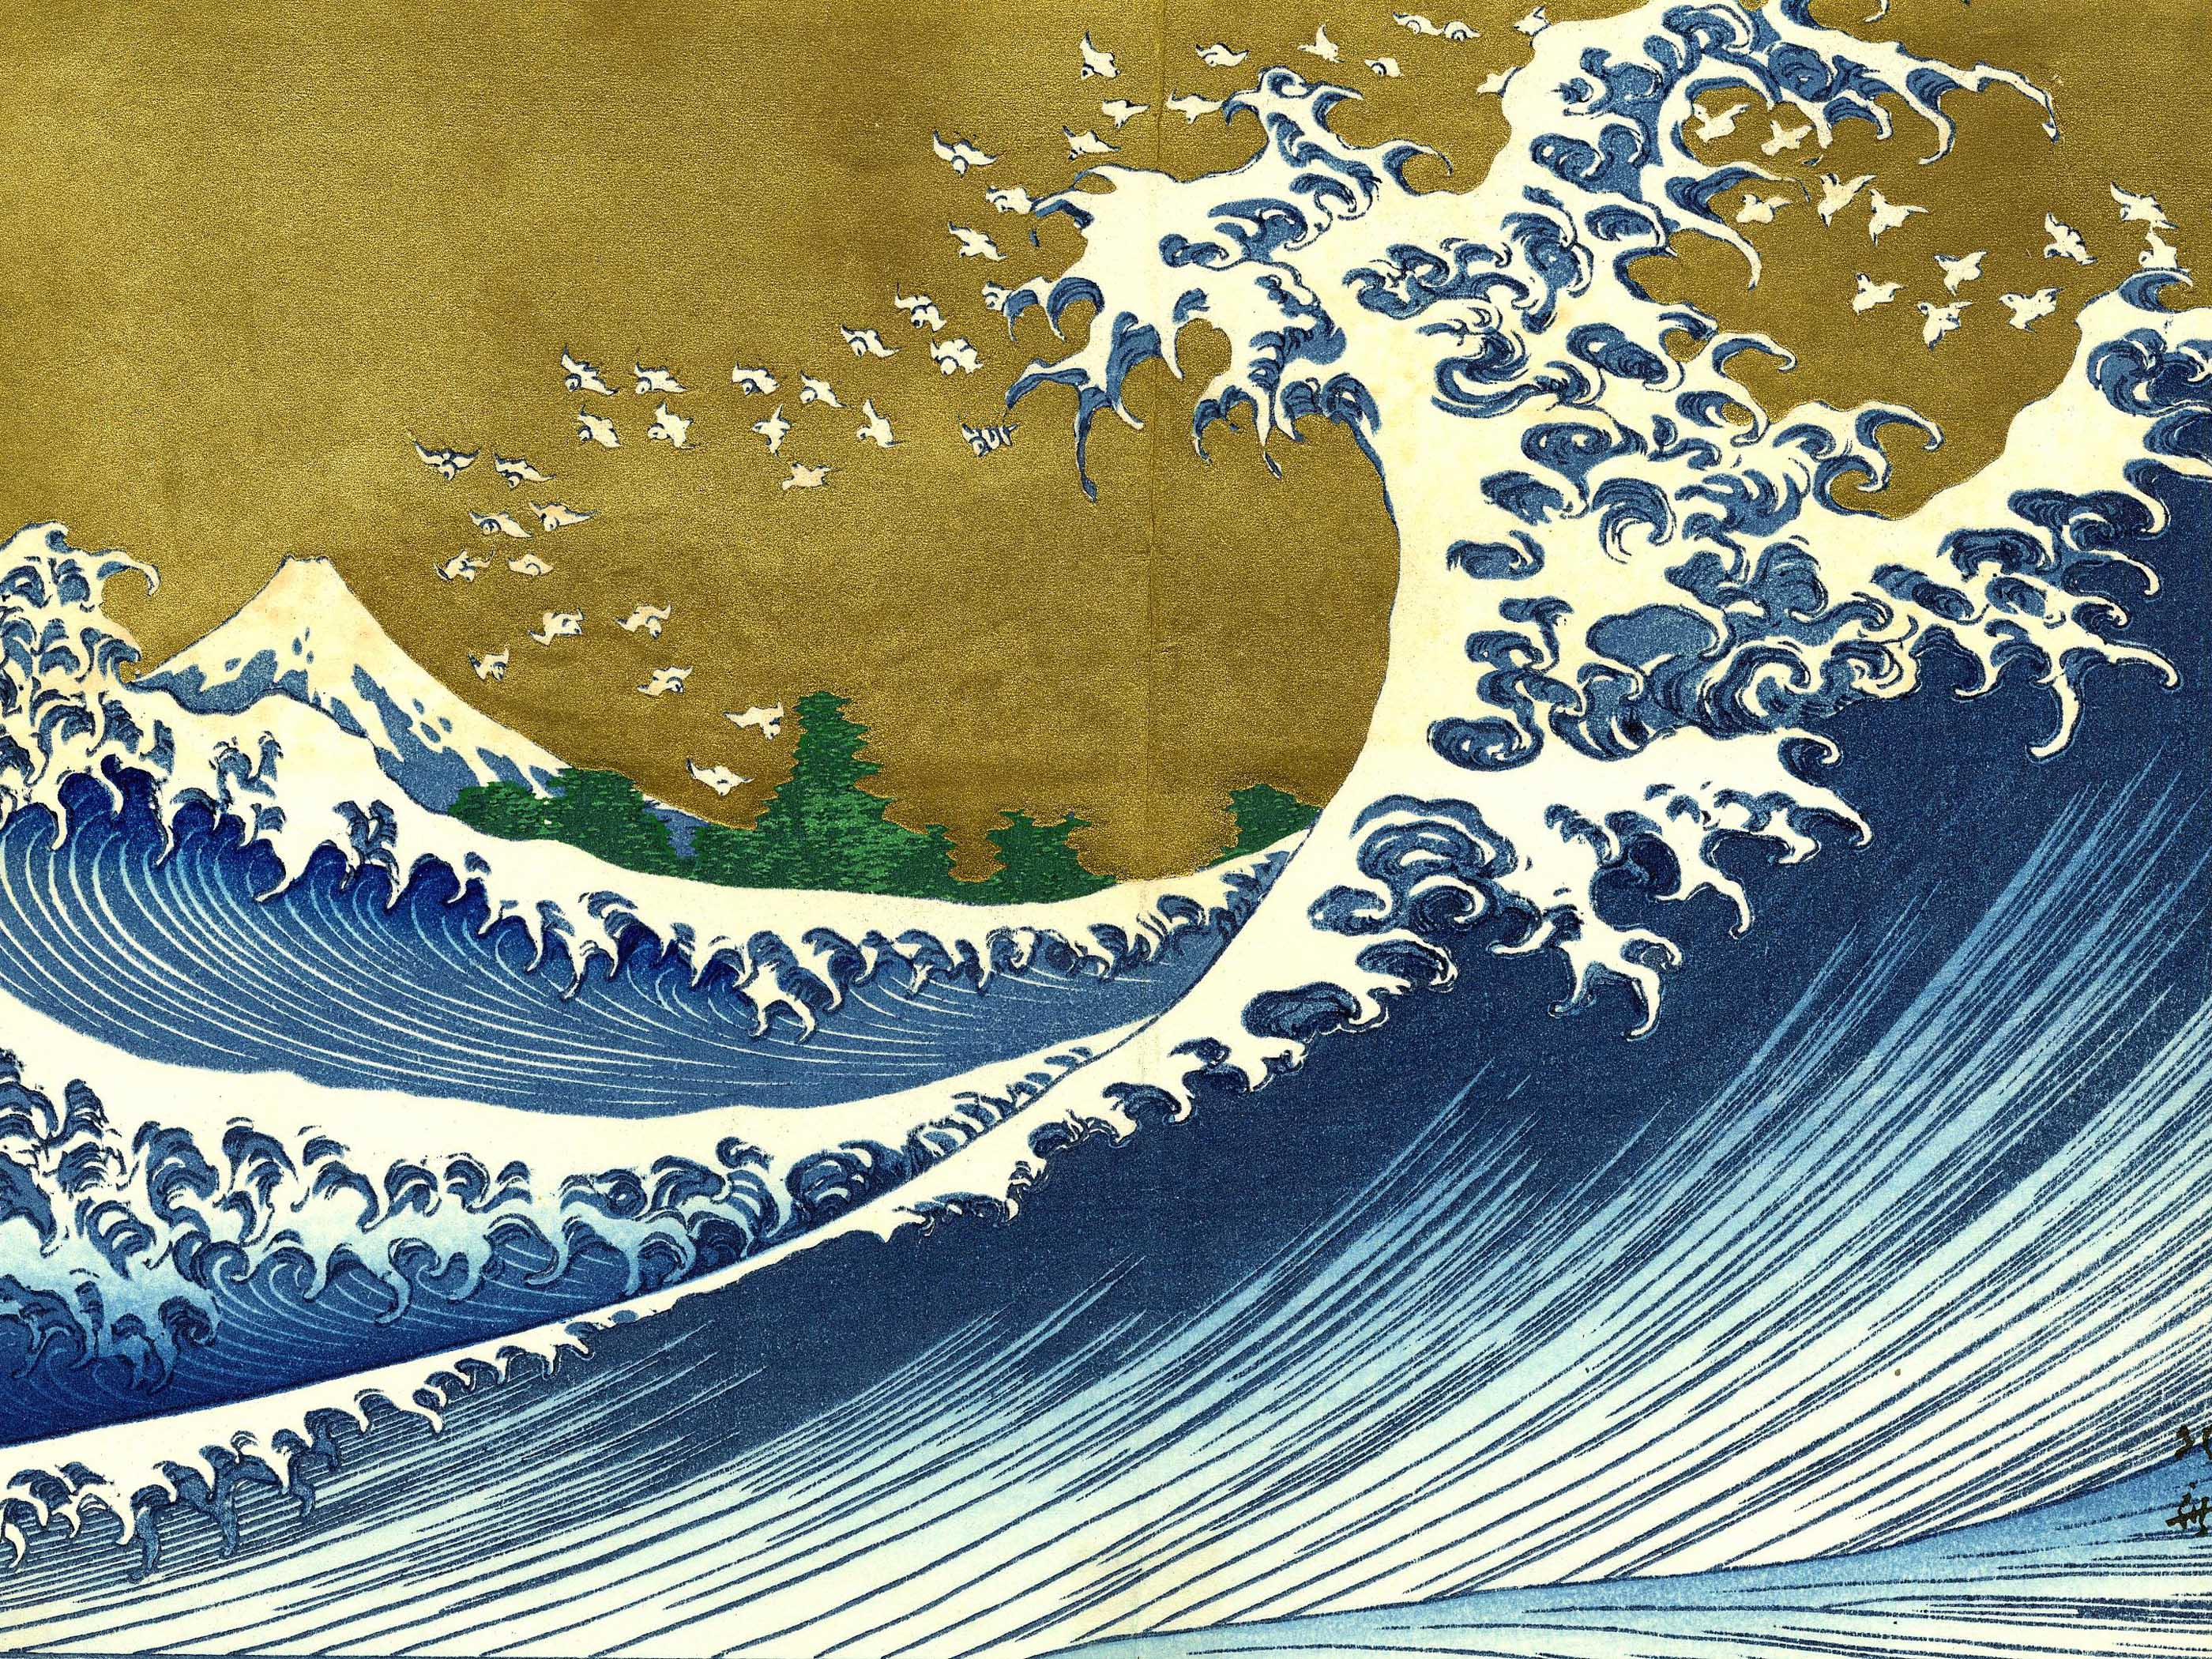 A colored version of the big wave katsushika hokusai